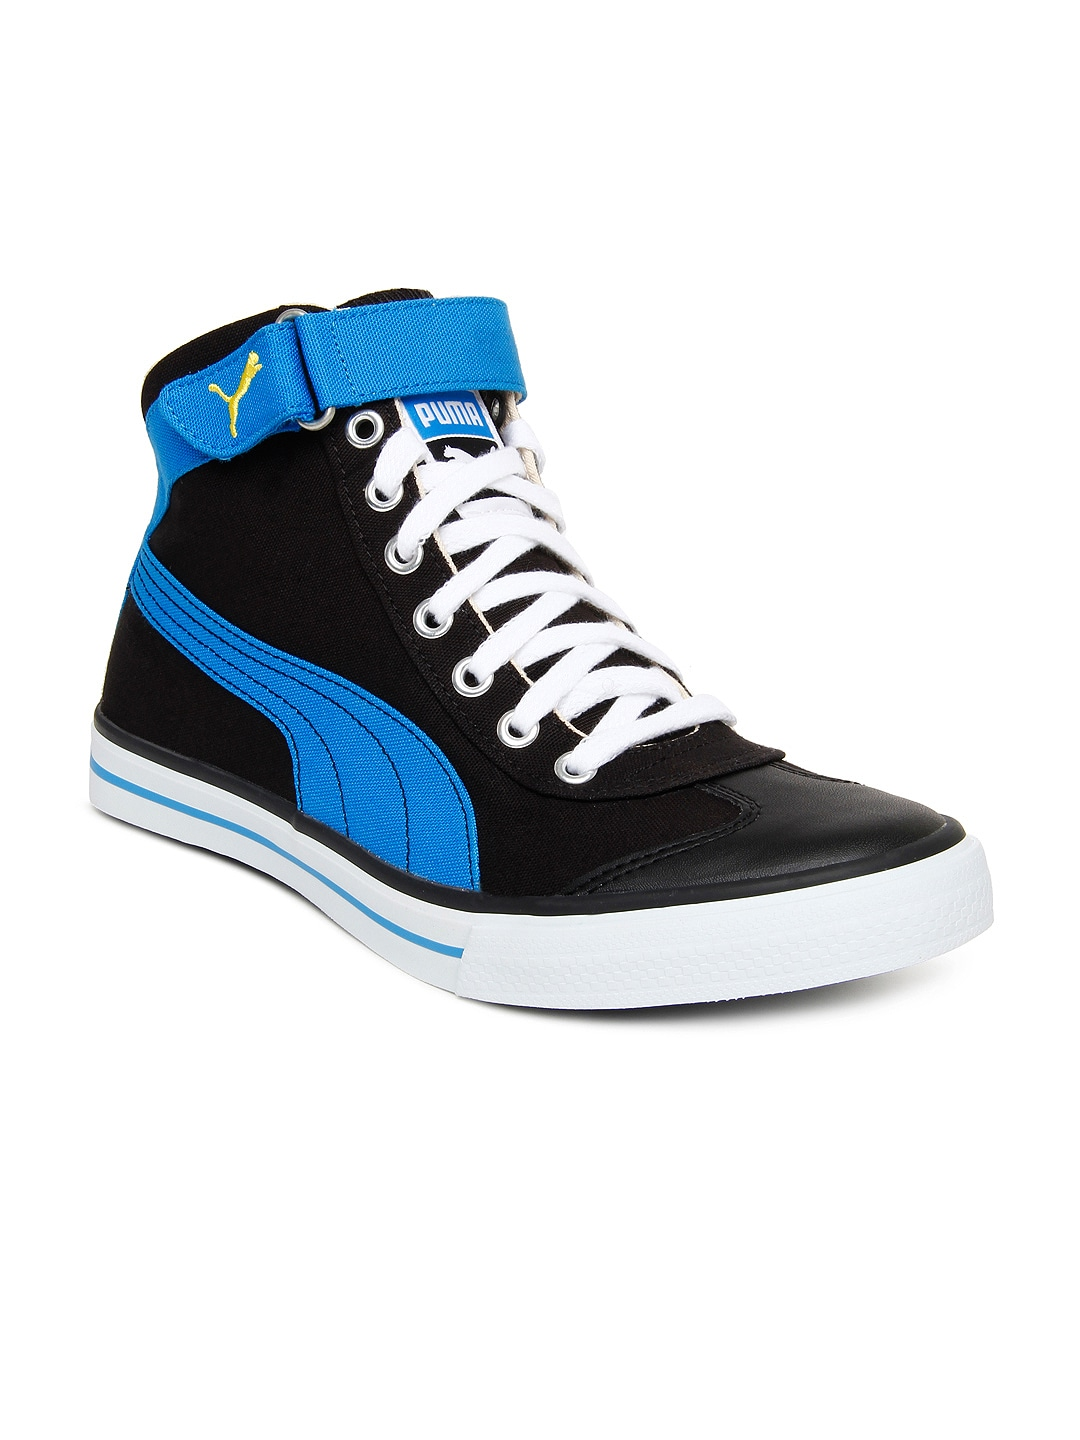 Puma 35854102 Unisex Black Casual Shoes - Best Price in India ... a2c0724cd